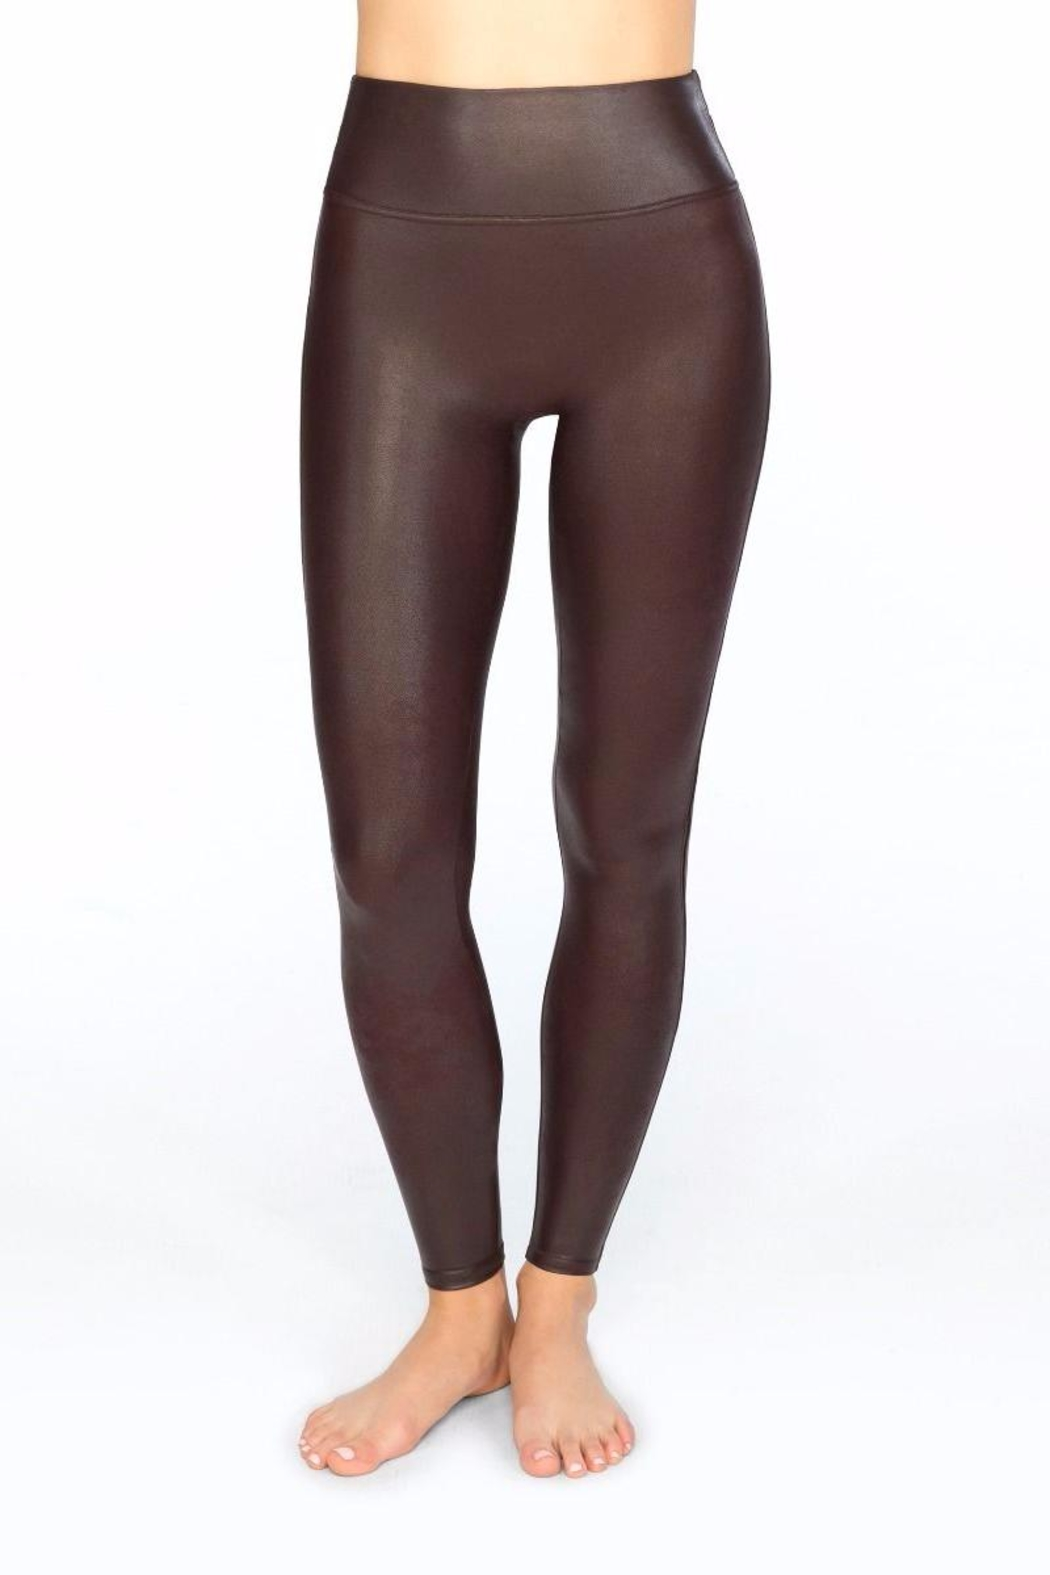 Spanx Faux Leather Legging From Canada By Blue Sky